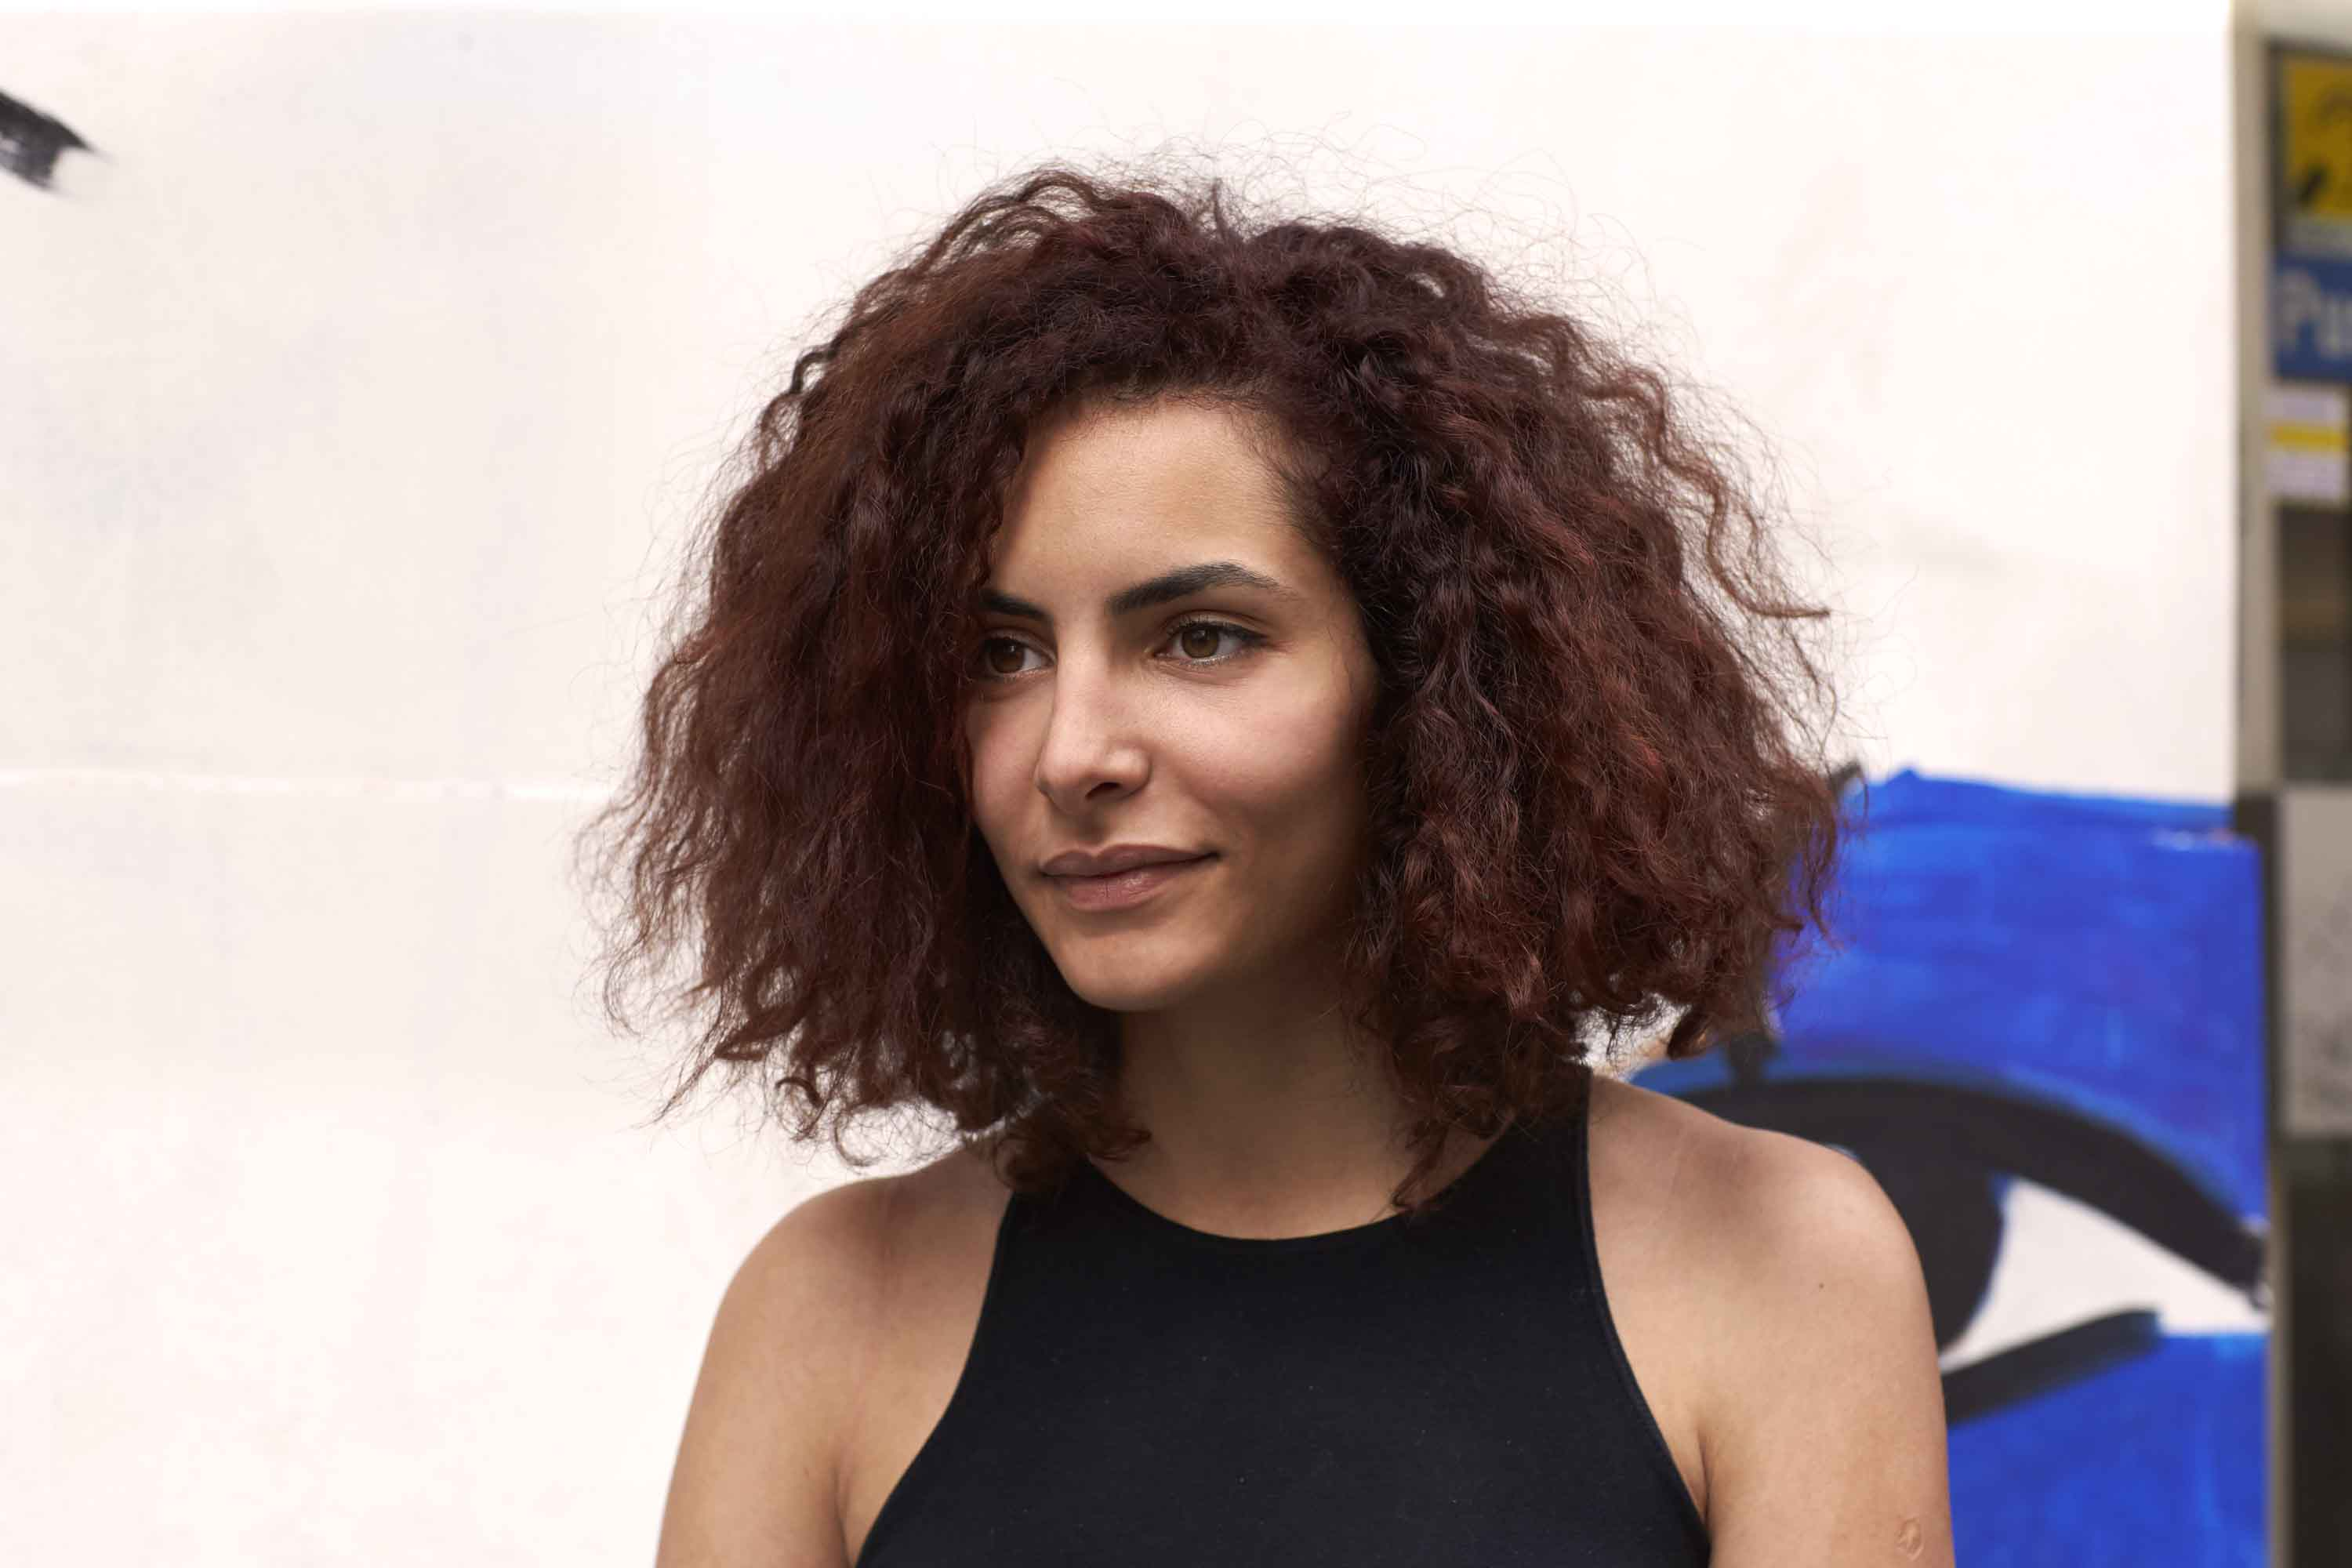 Medium hairstyles for thick hair: Street style shot of a woman with mid-length red brown naturally curly hair, wearing a black top